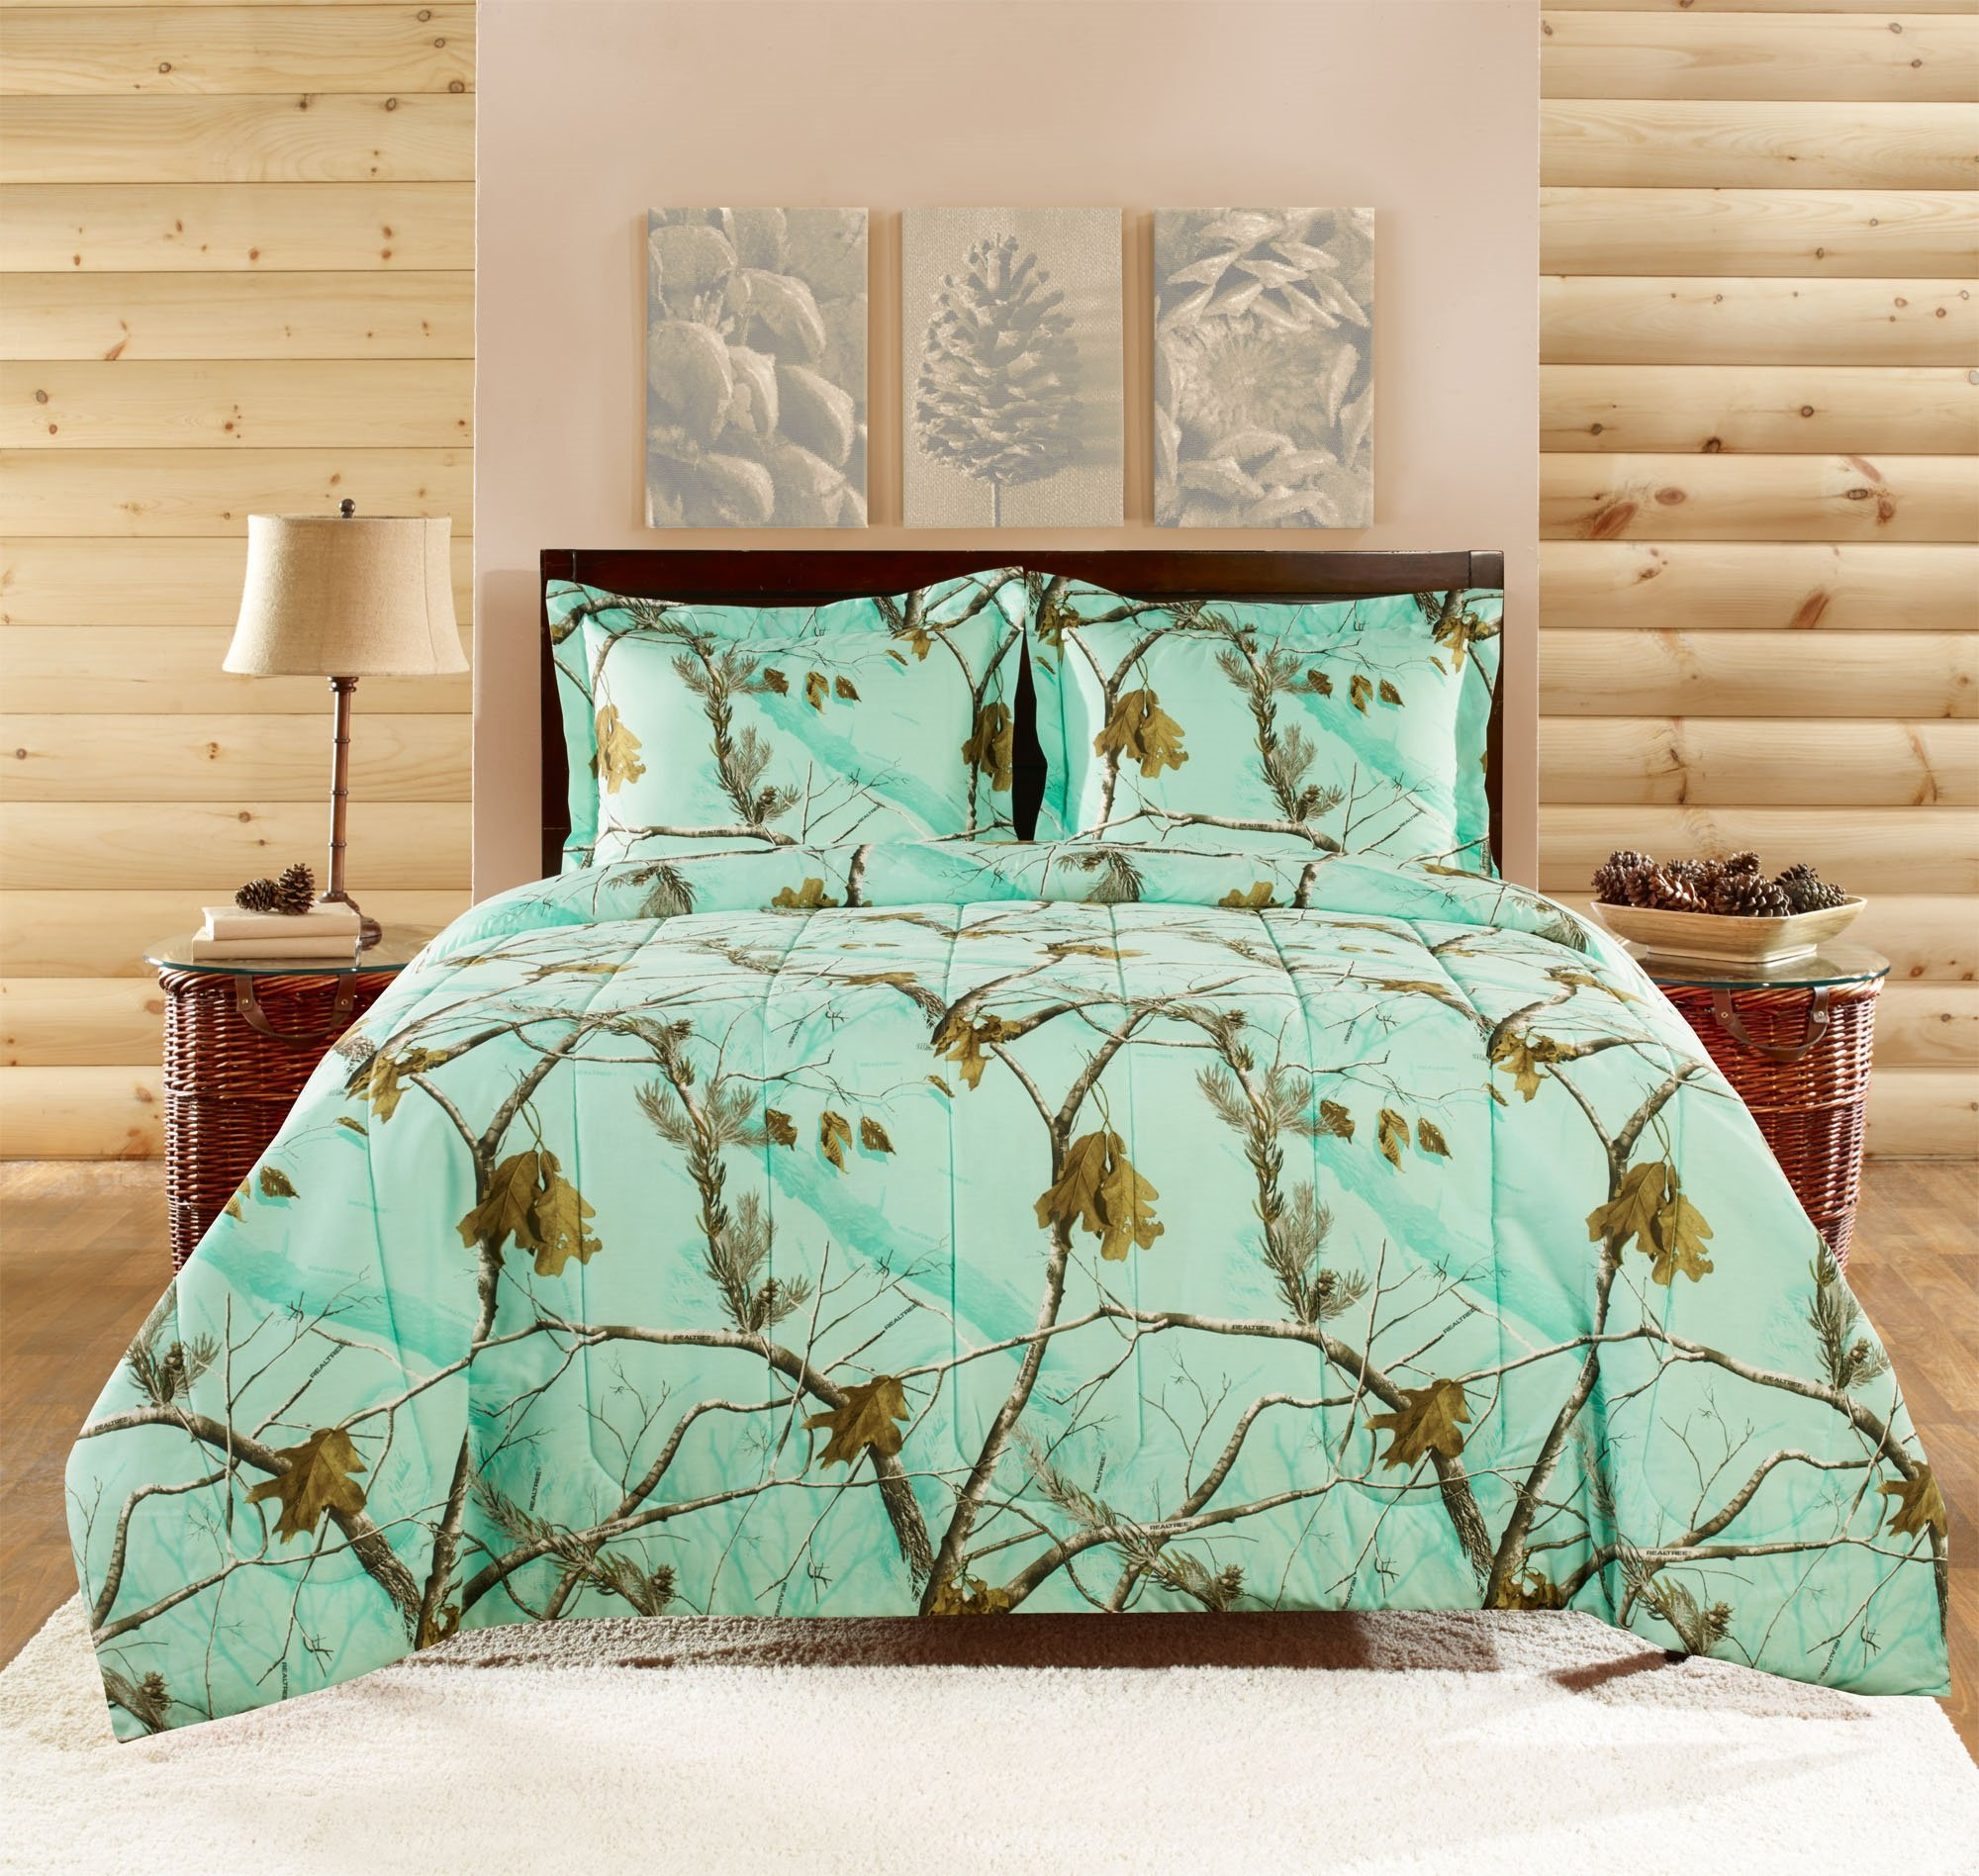 New Realtree Ap Hd Camo Colors Bedding By 1888 Mills Realtree Camo